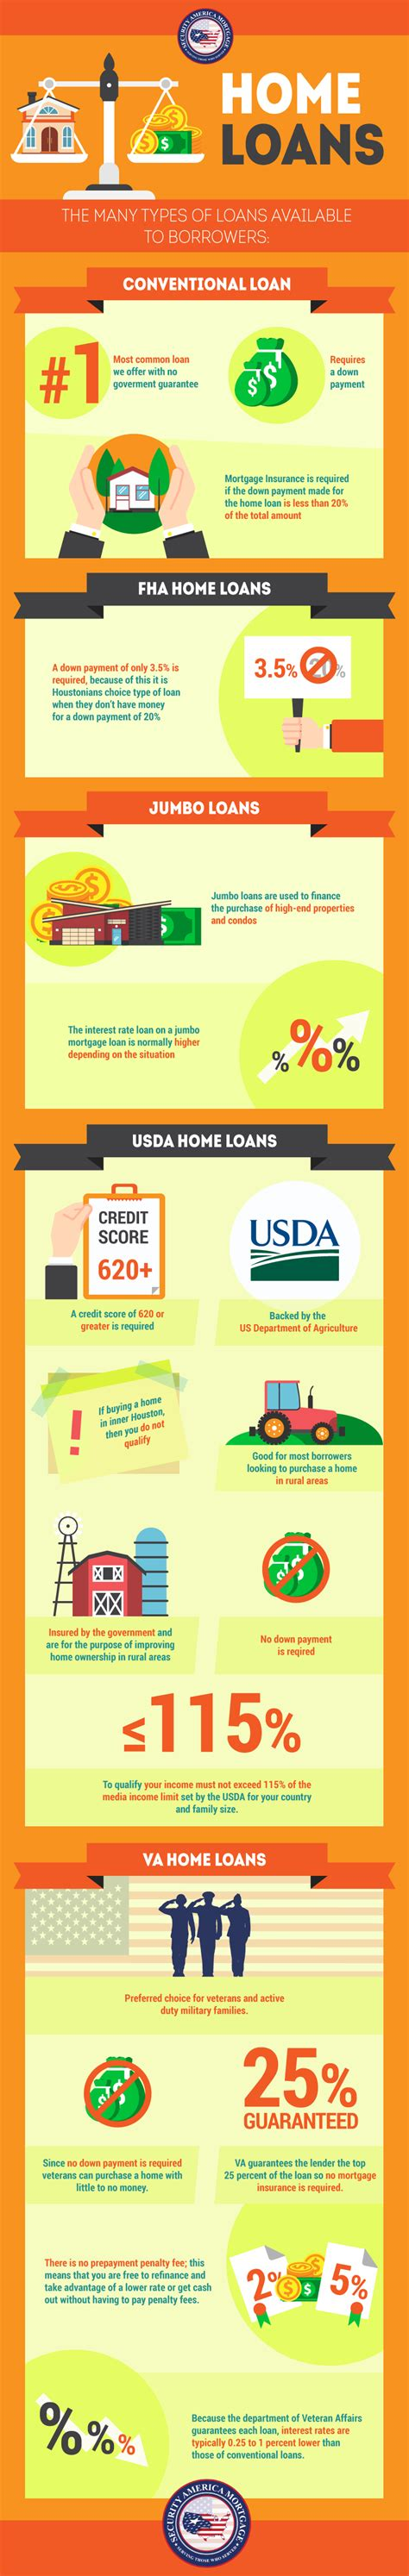 house mortgage rates calculator va house loan calculator non va home loan options infographic